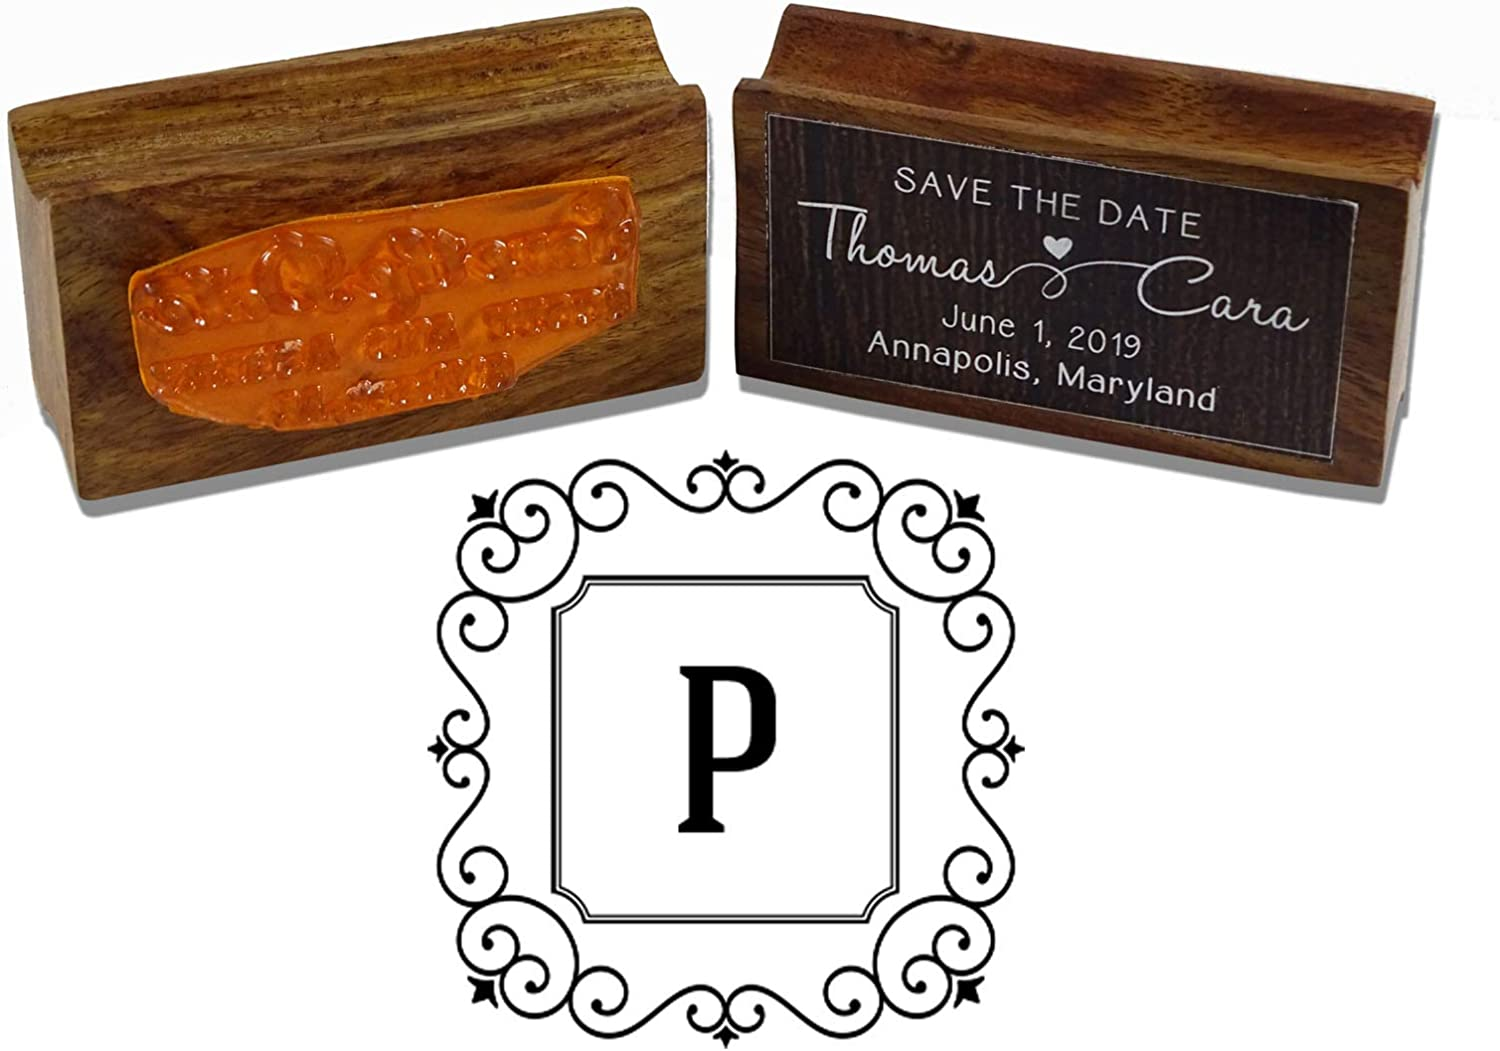 Printtoo Square Swirl Border Letter A Initial Uppercase Monogram Wood Mounted Rubber Stamp